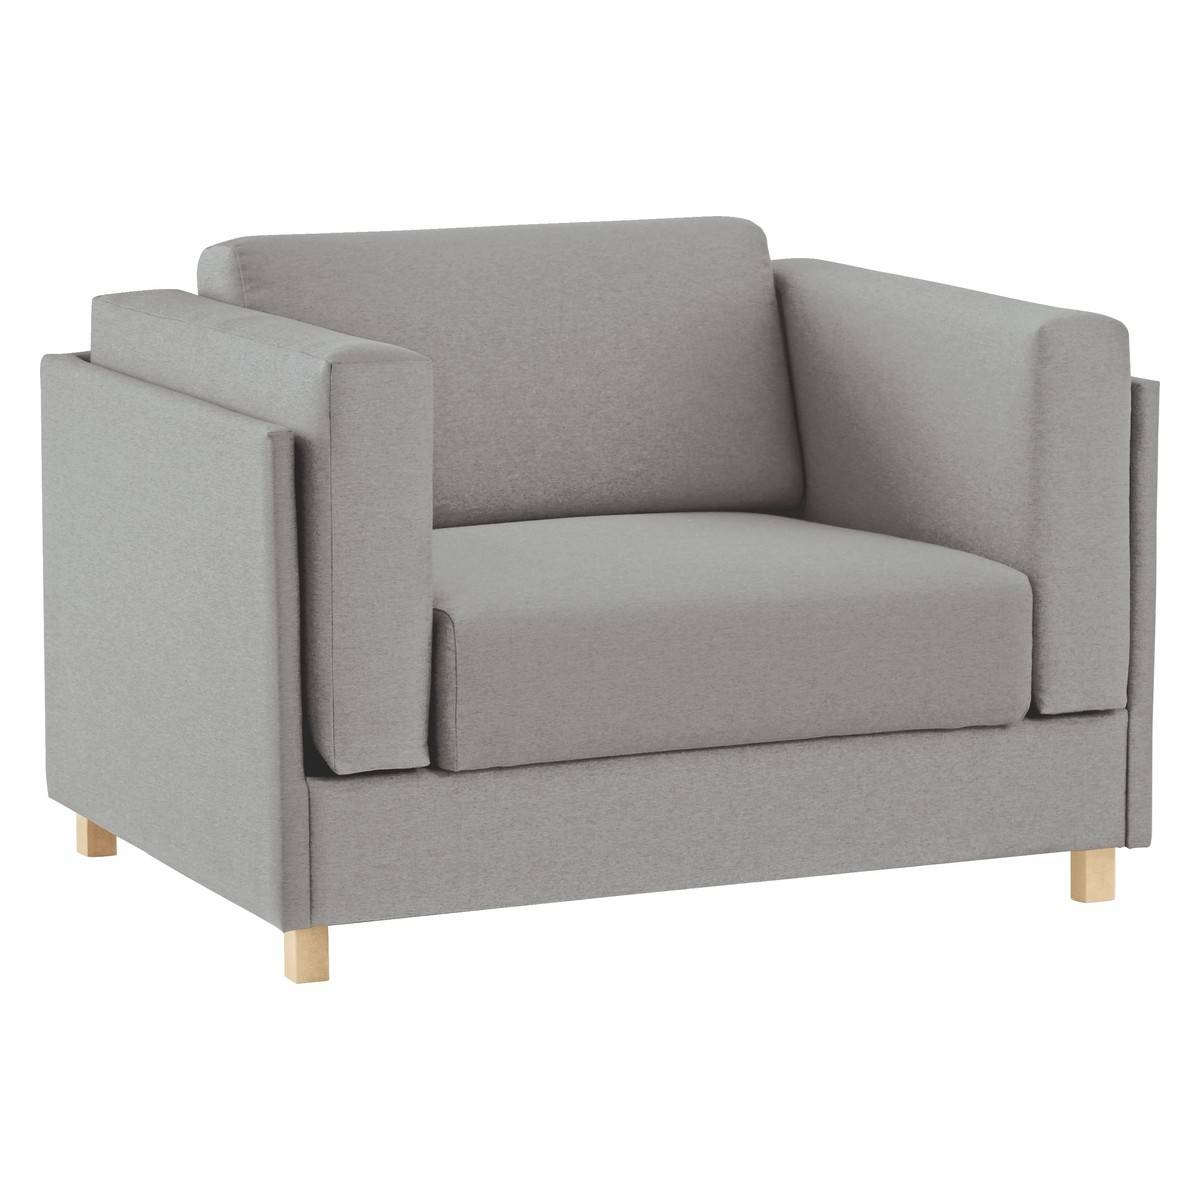 New Single Sofa Beds Uk 87 For Your Single Sofa Bed Chairs With Pertaining To Single Sofa Bed Chairs (View 12 of 15)